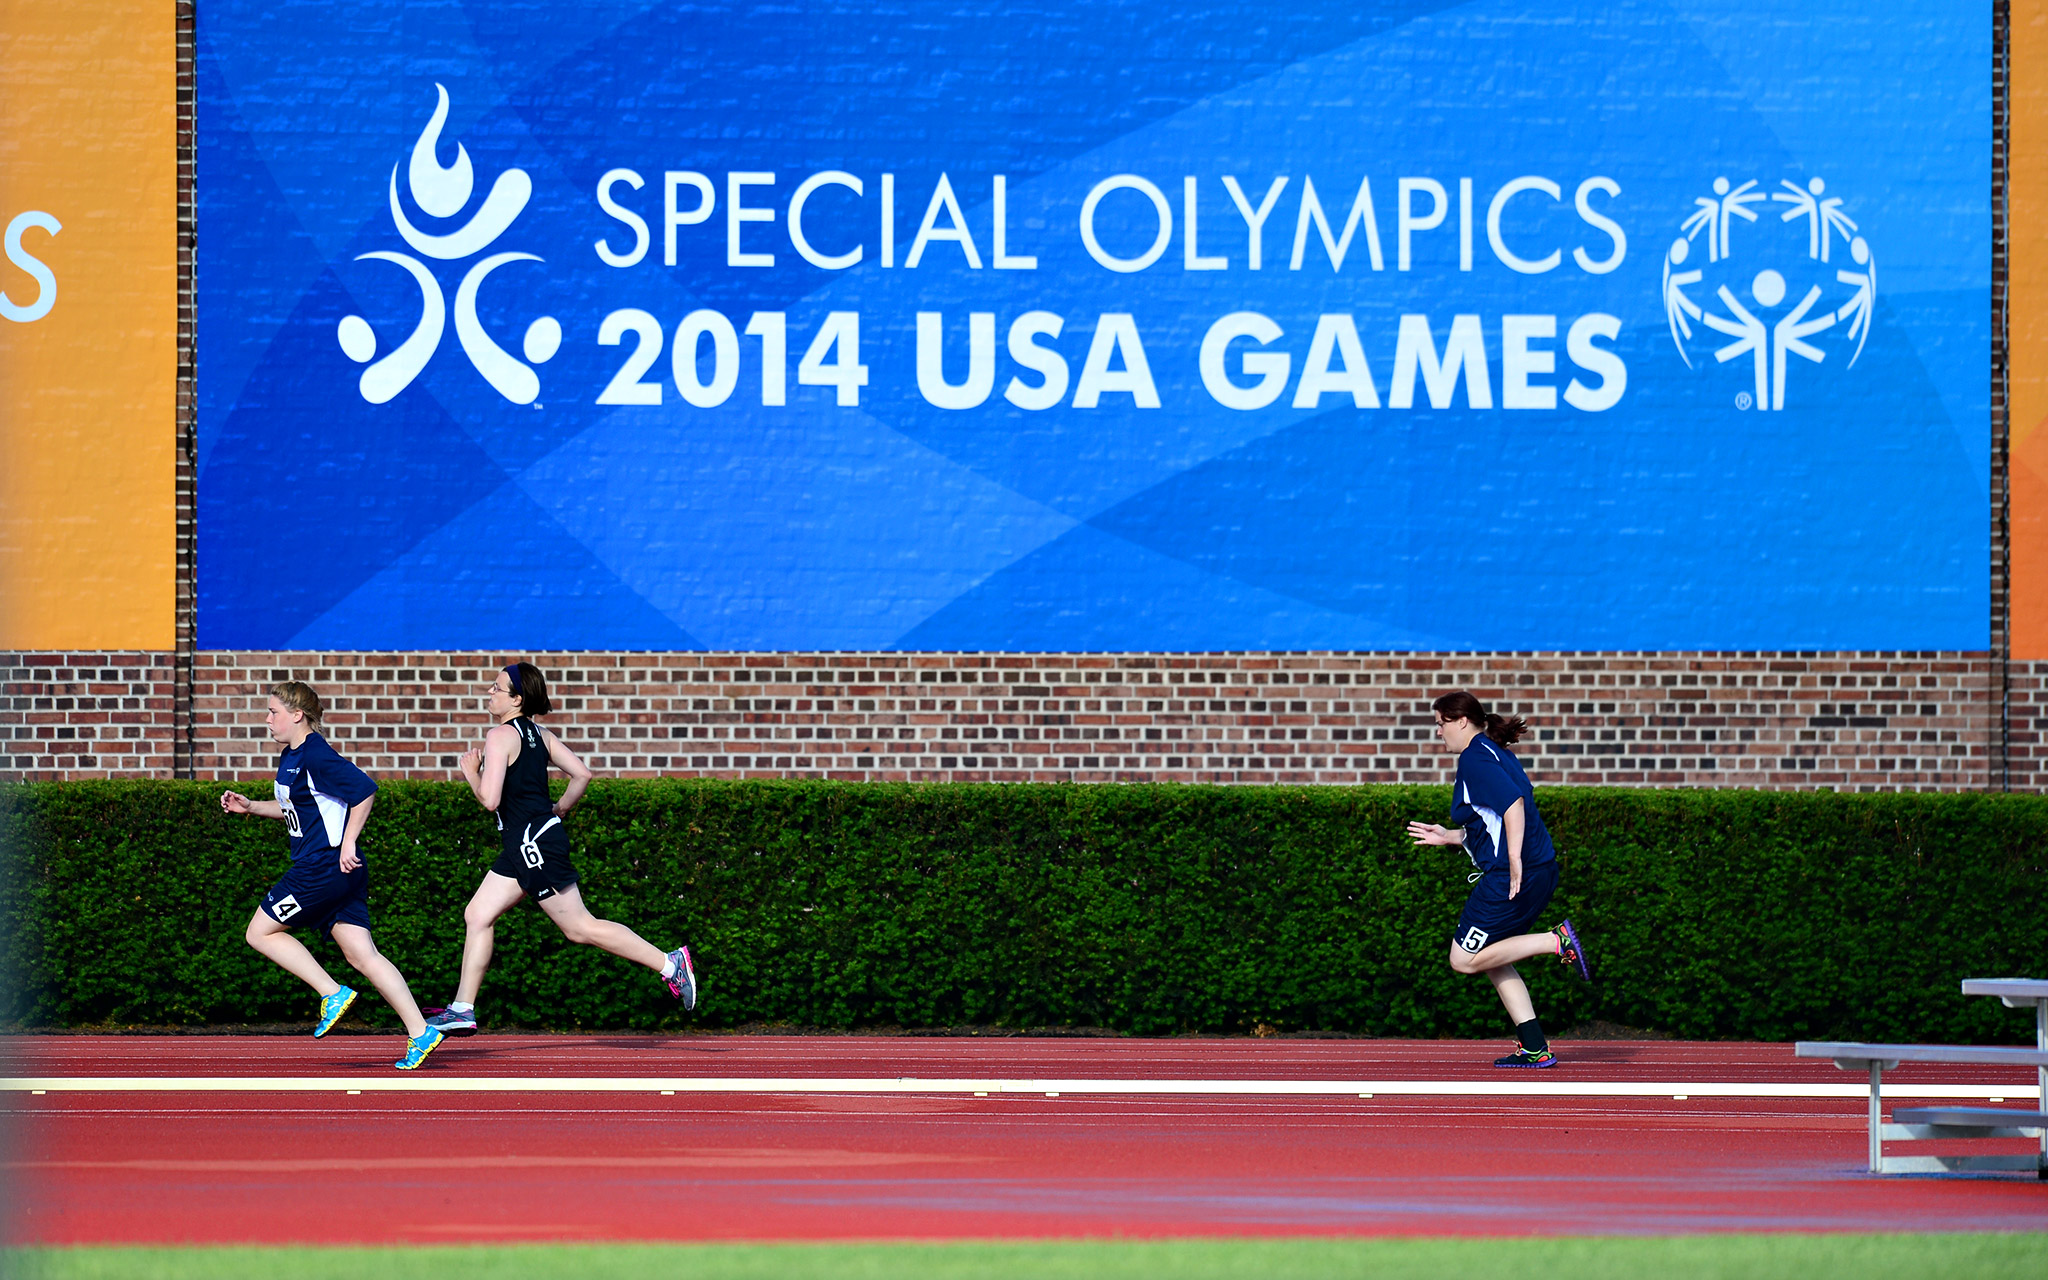 Princeton University's Weaver Track hosted track and field events for the 2014 Special Olympics USA Games for men and women. The 2015 World Games, which will be seen on ESPN, start a year from Friday, July 25.